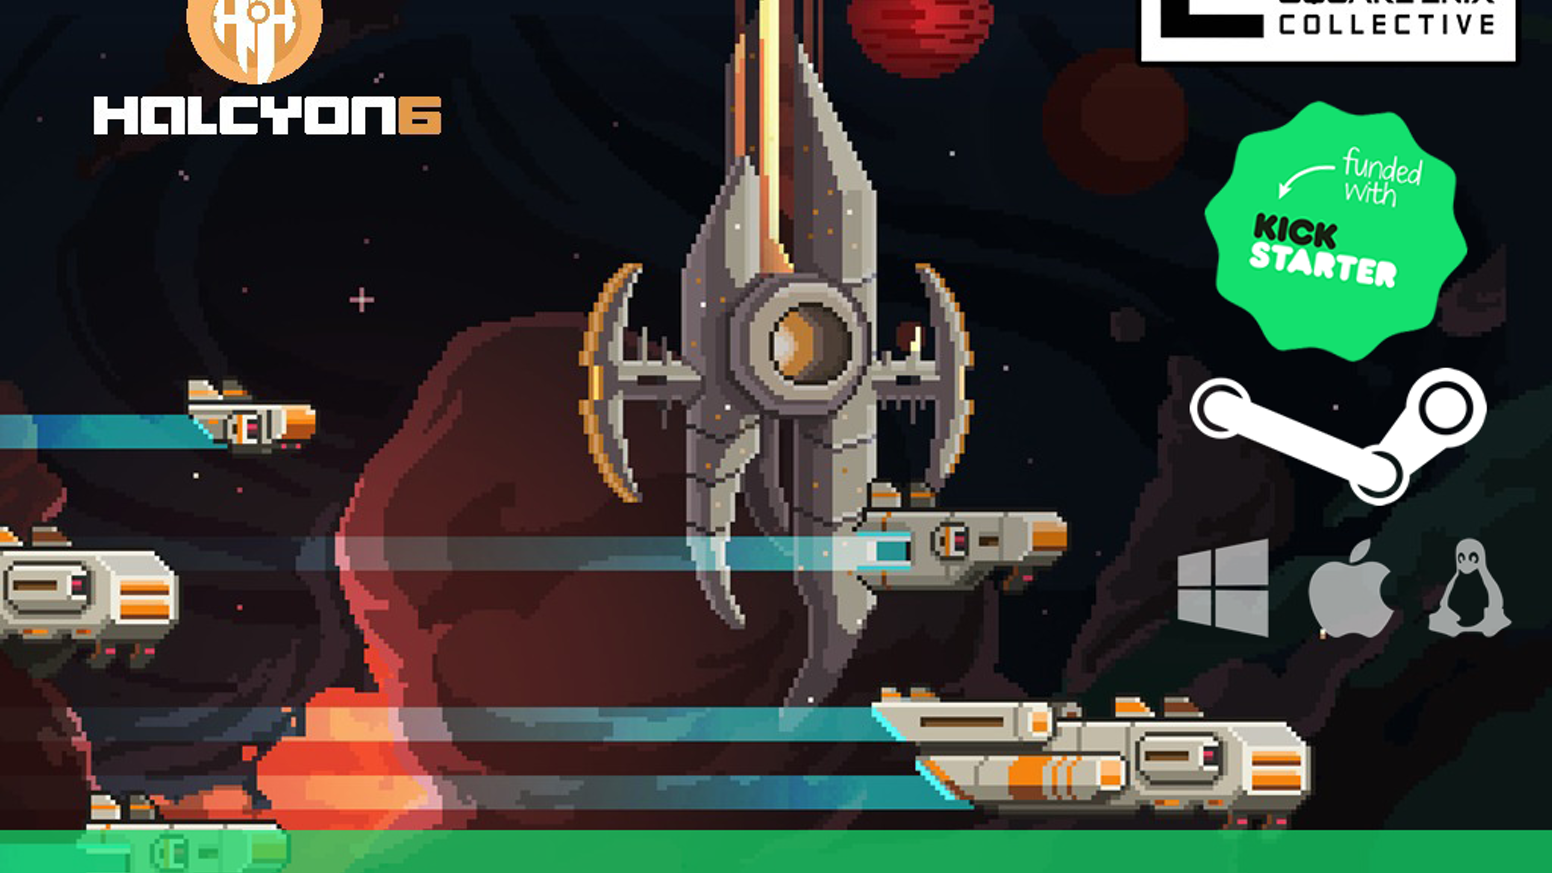 A retro sci-fi strategy survival game with base building, tactical combat, crew management and emergent storytelling.